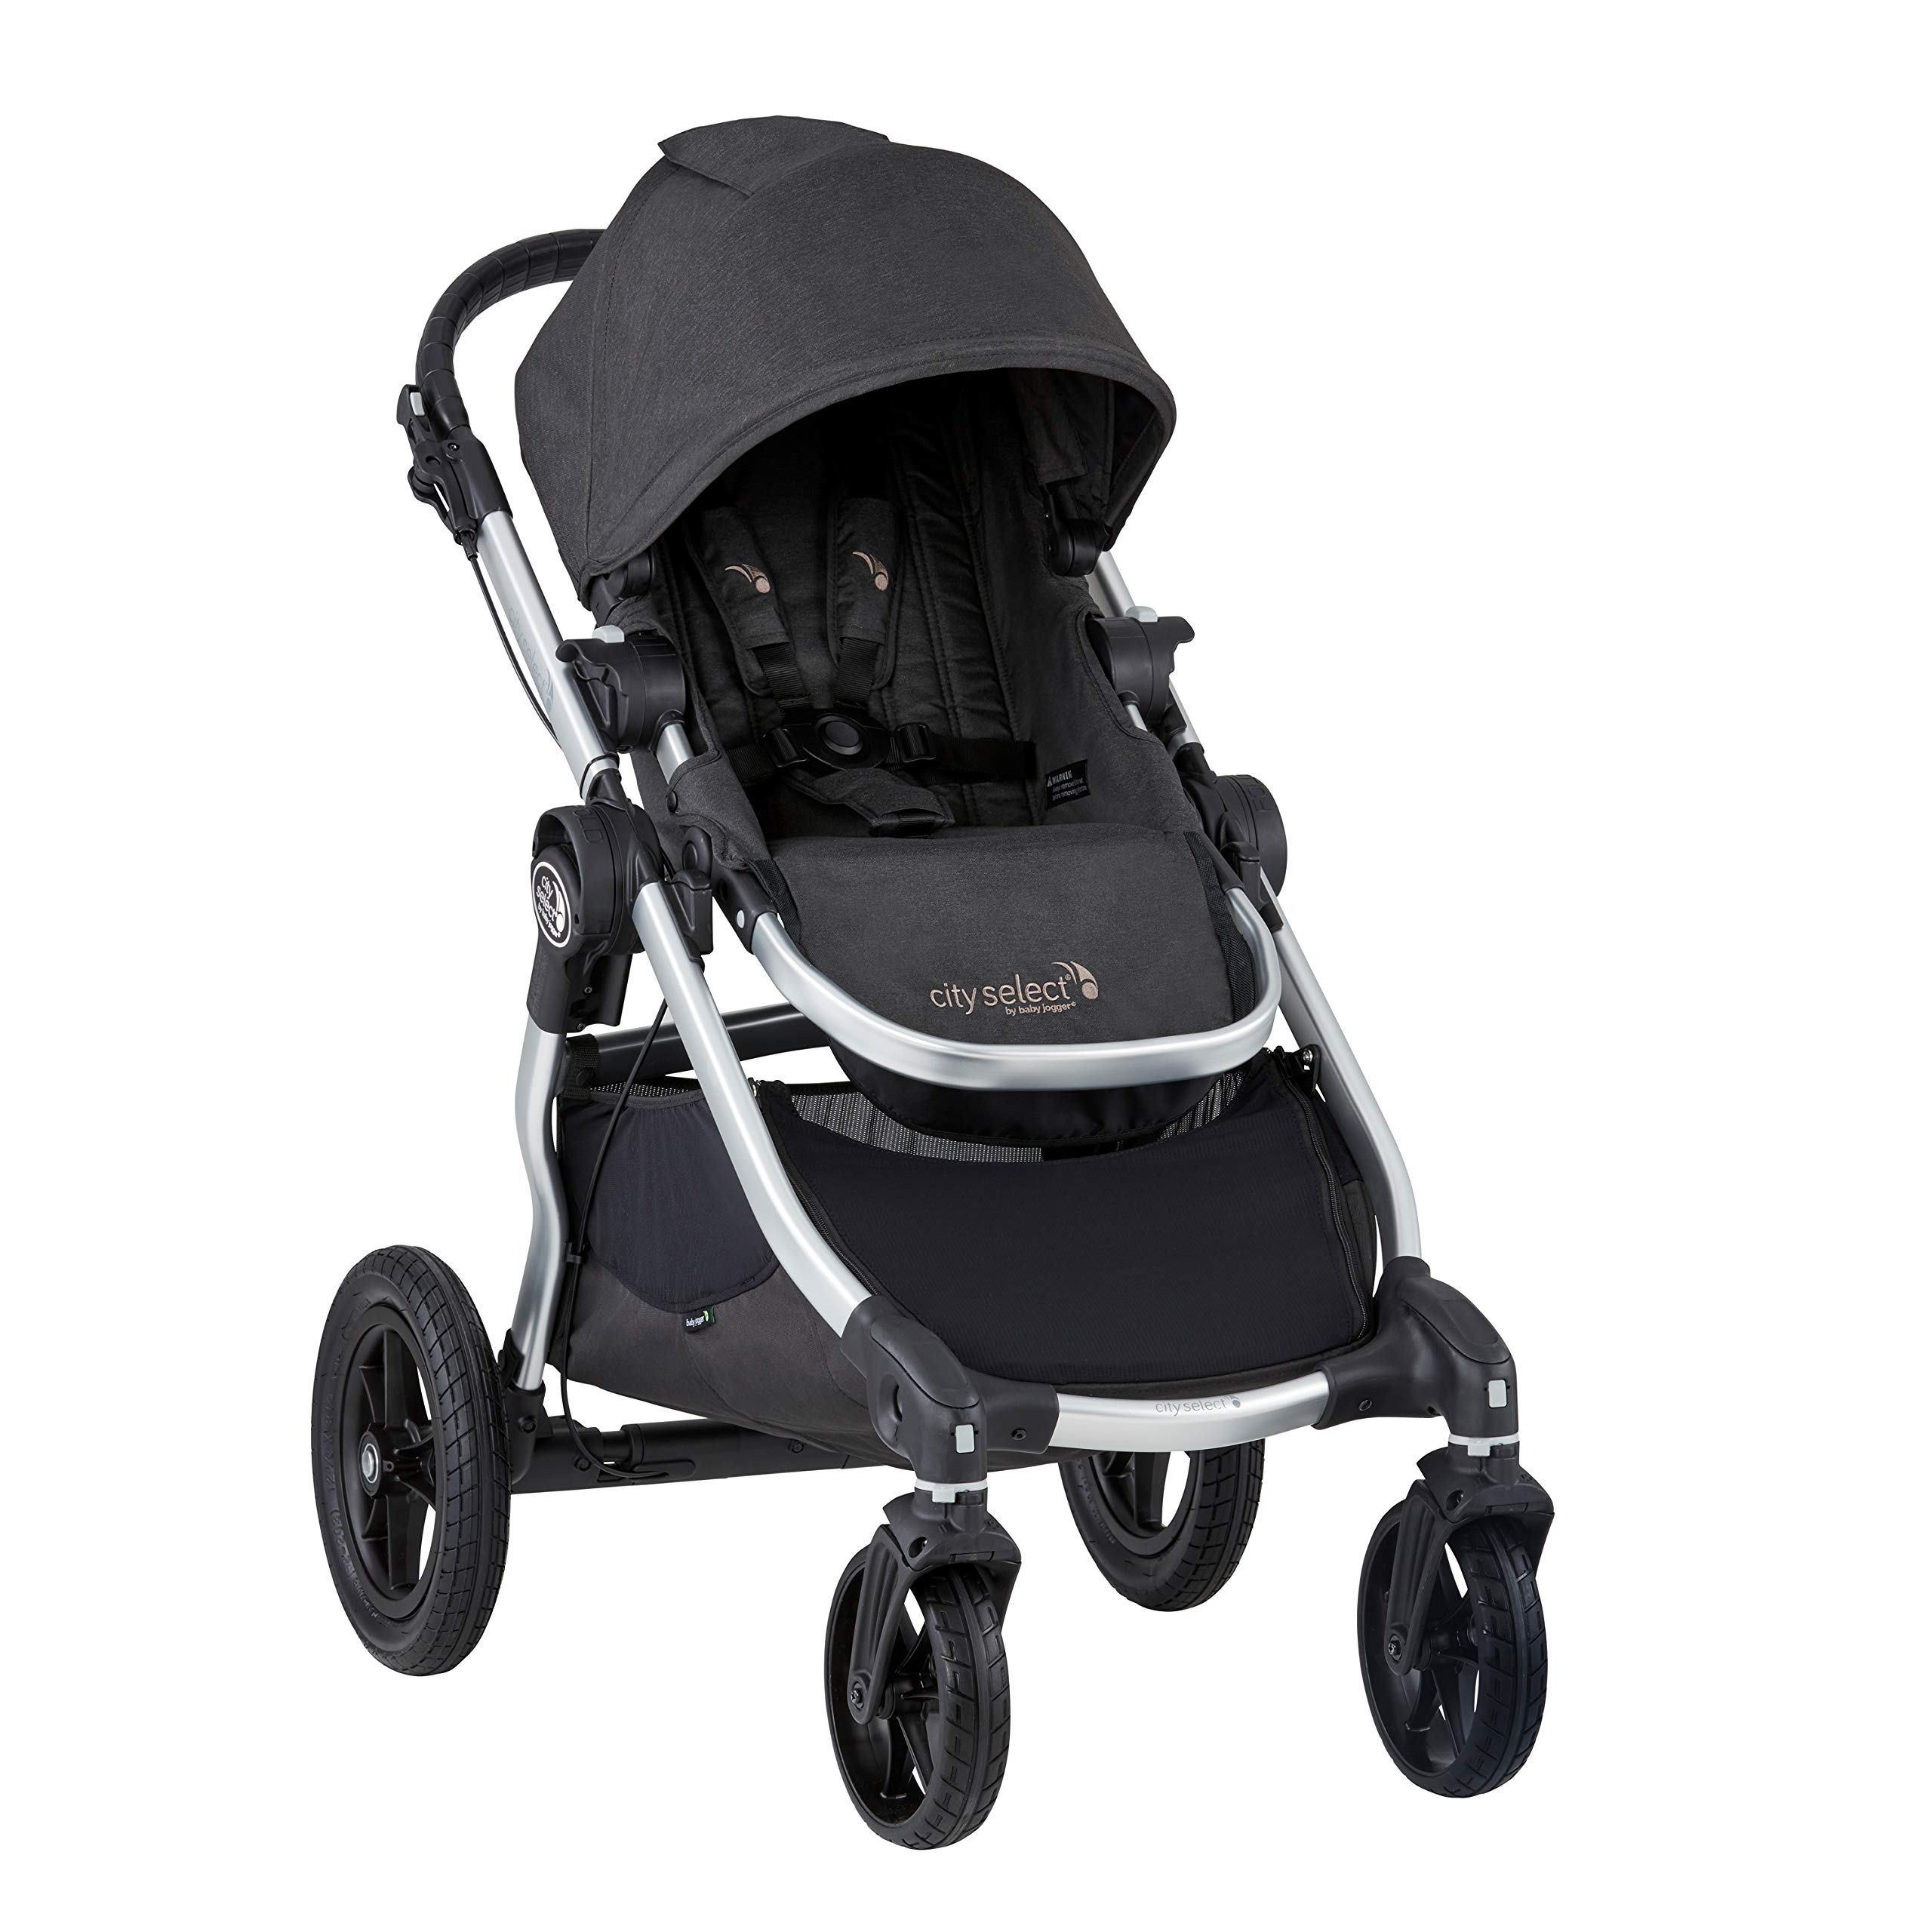 Baby Jogger City Select Stroller | Baby Stroller with 16 Ways to Ride, Goes from Single to Double Stroller | Quick Fold Stroller, Jet